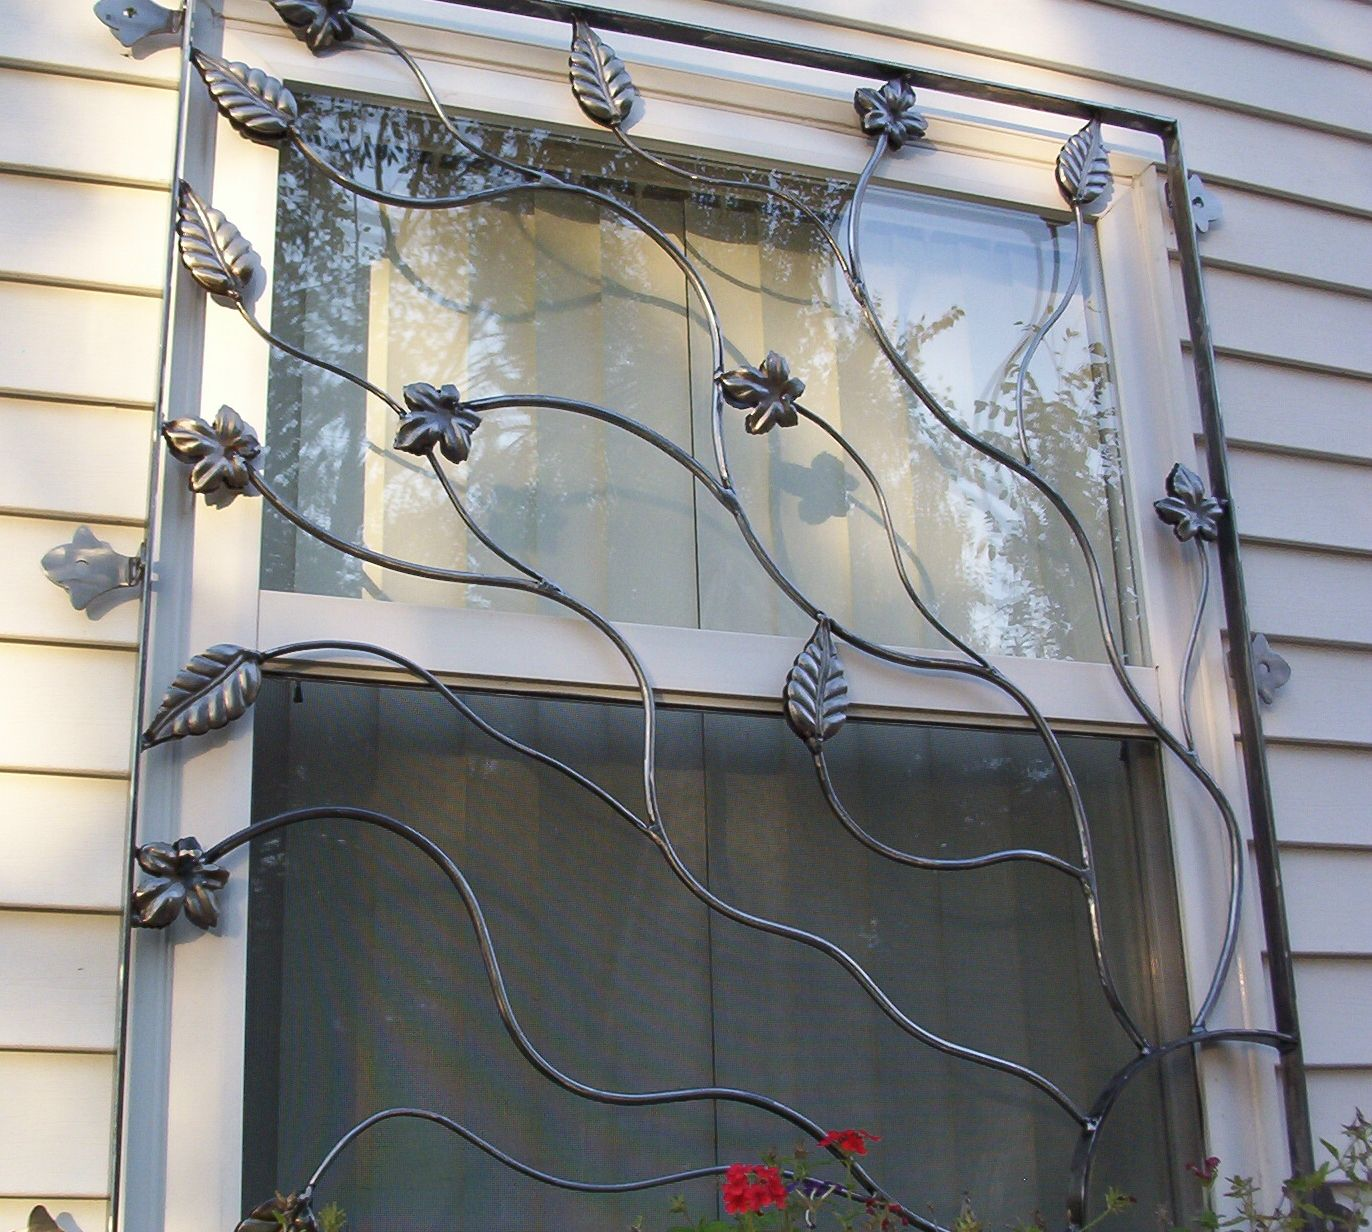 Window Security Bars Lowes >> Cast Iron security bars for window. Leaves and Vines in ...